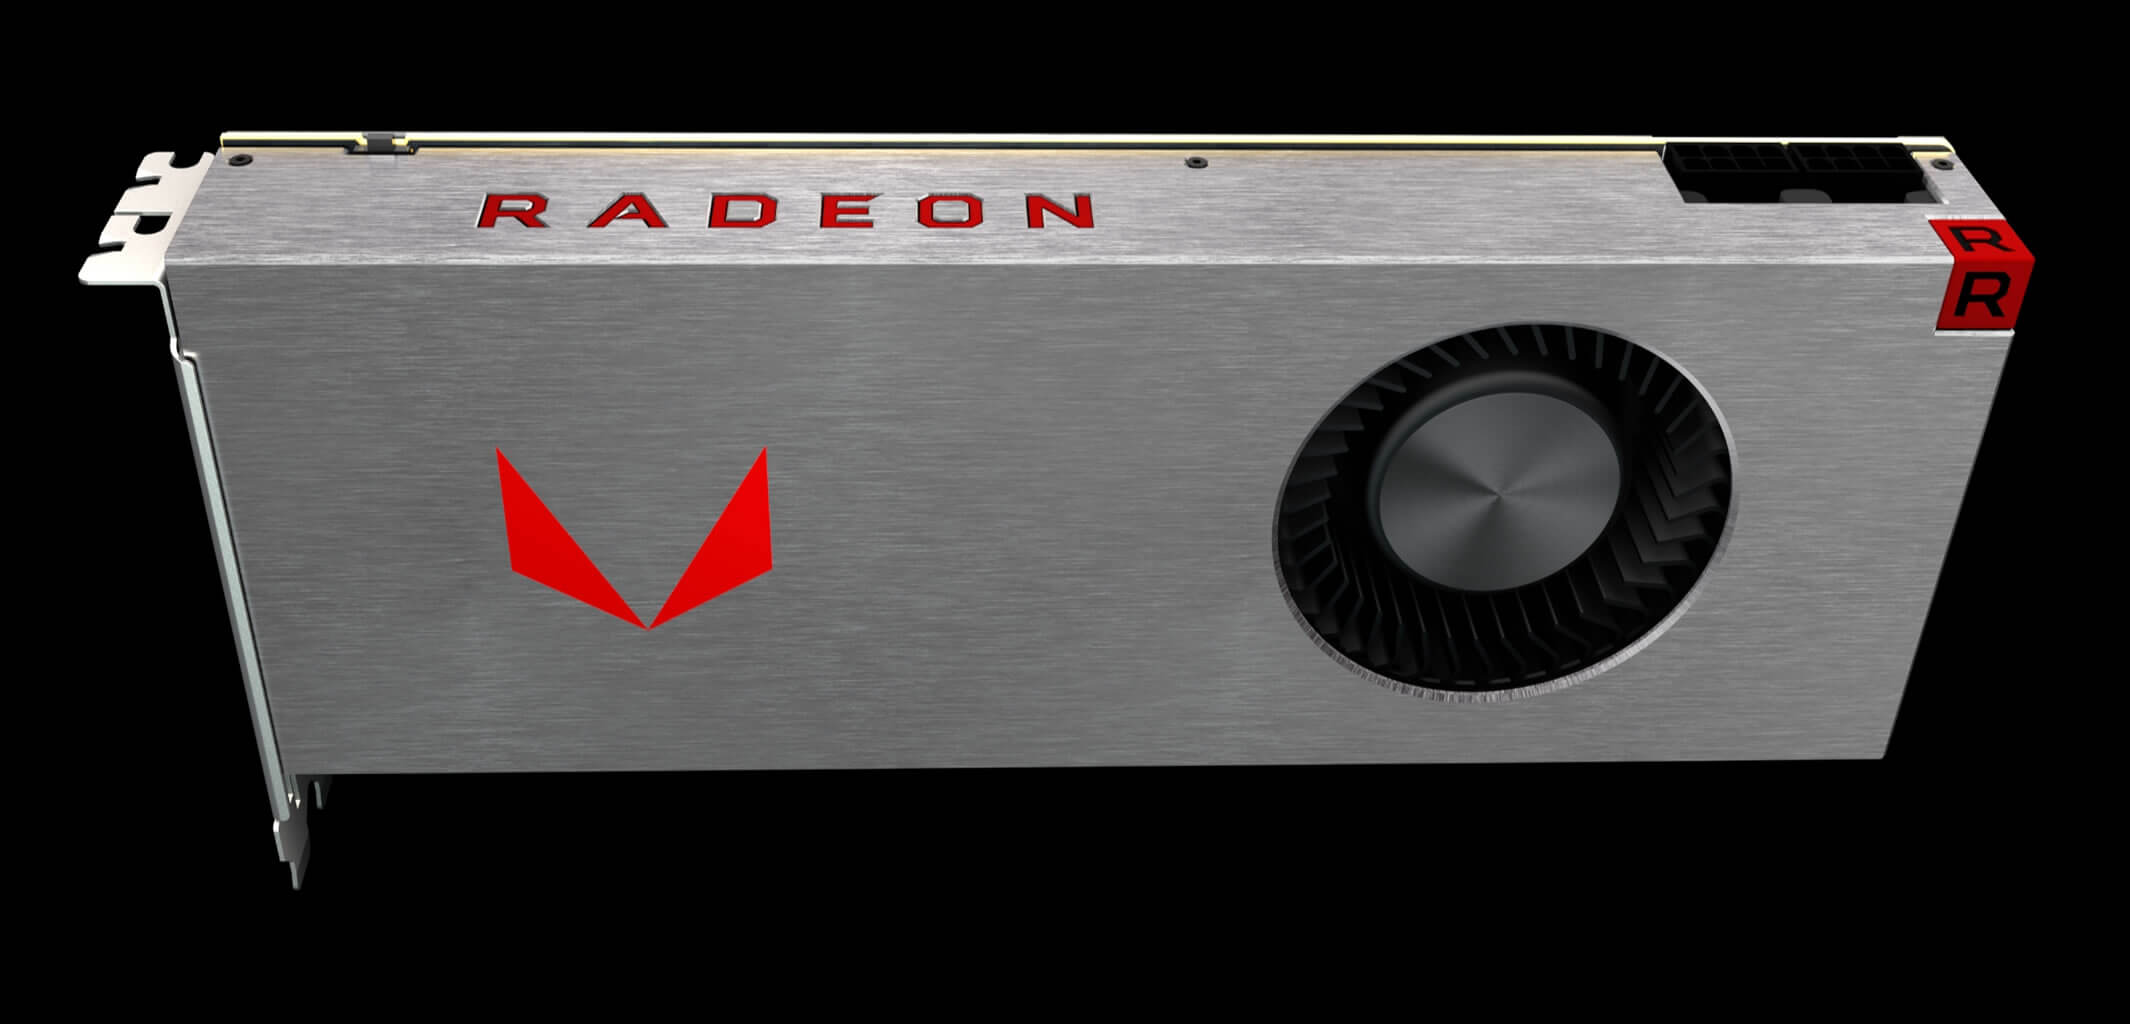 Amd Radeon Rx Vega 64 And Radeon Rx Vega 56 Official Specs And